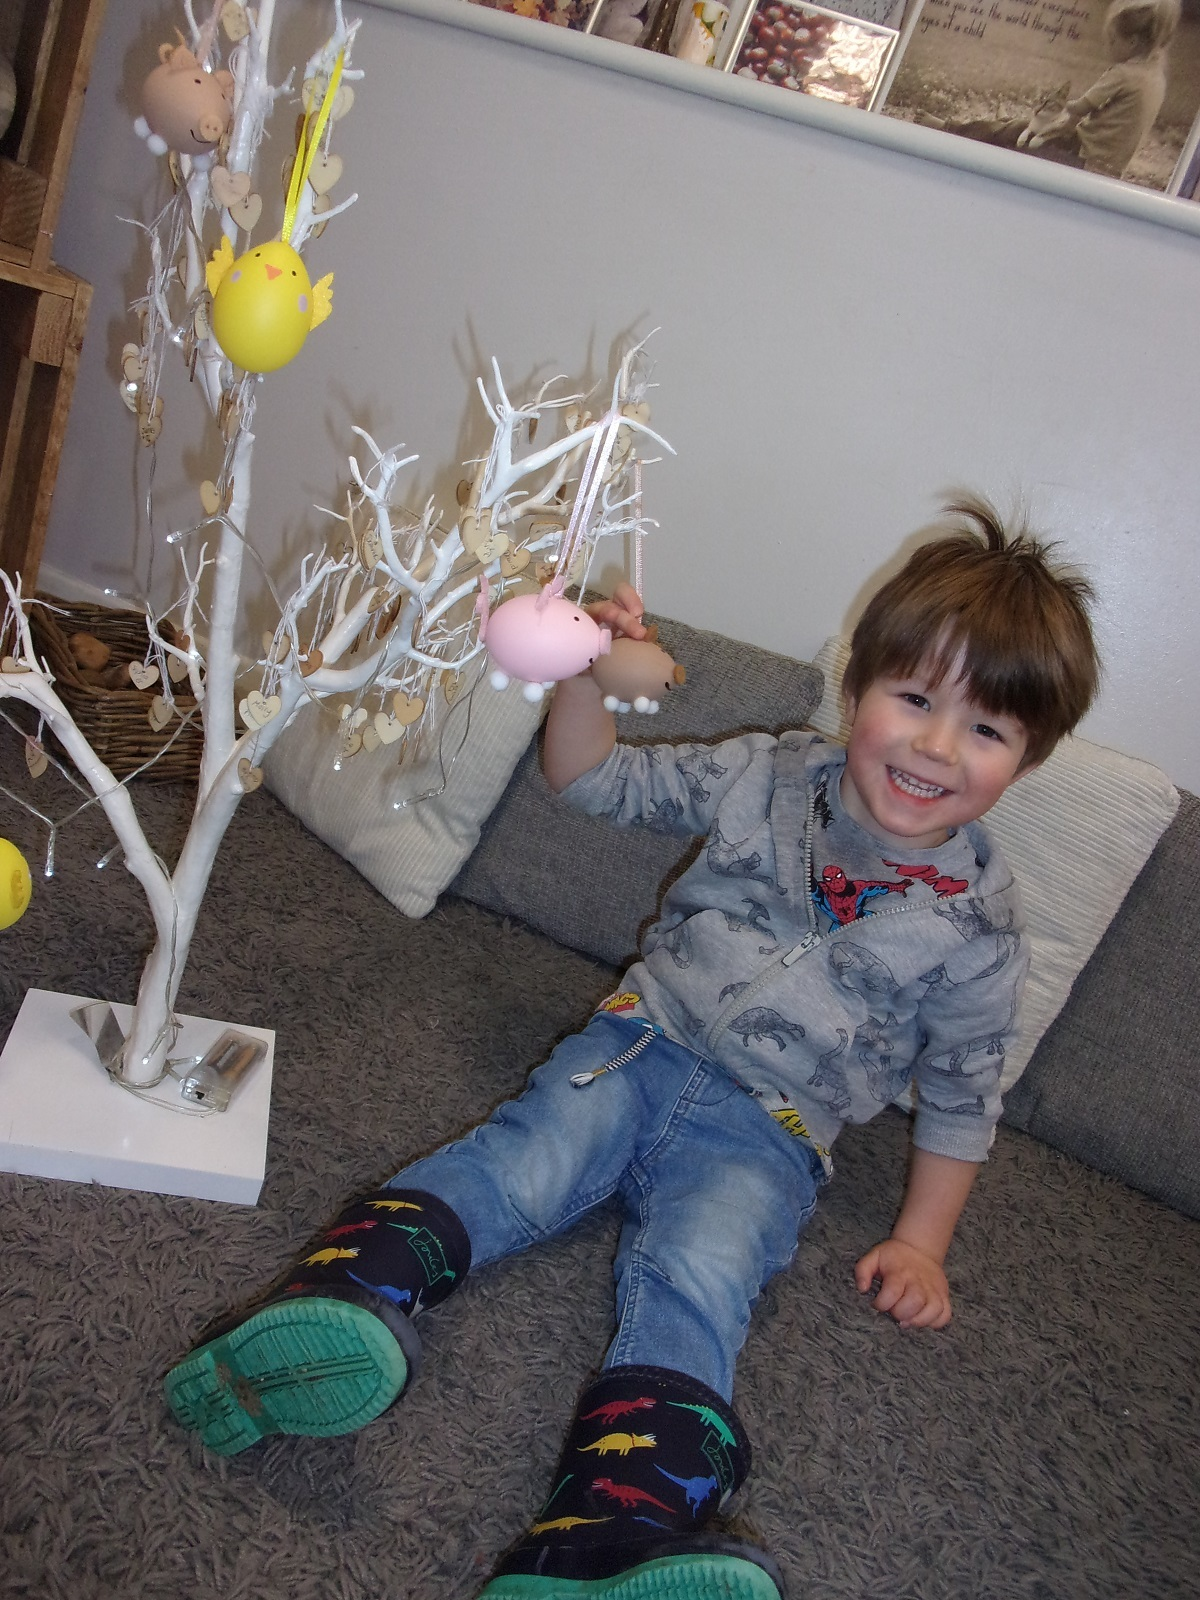 Branching out - Thomas Coates is busy decorating an Easter tree